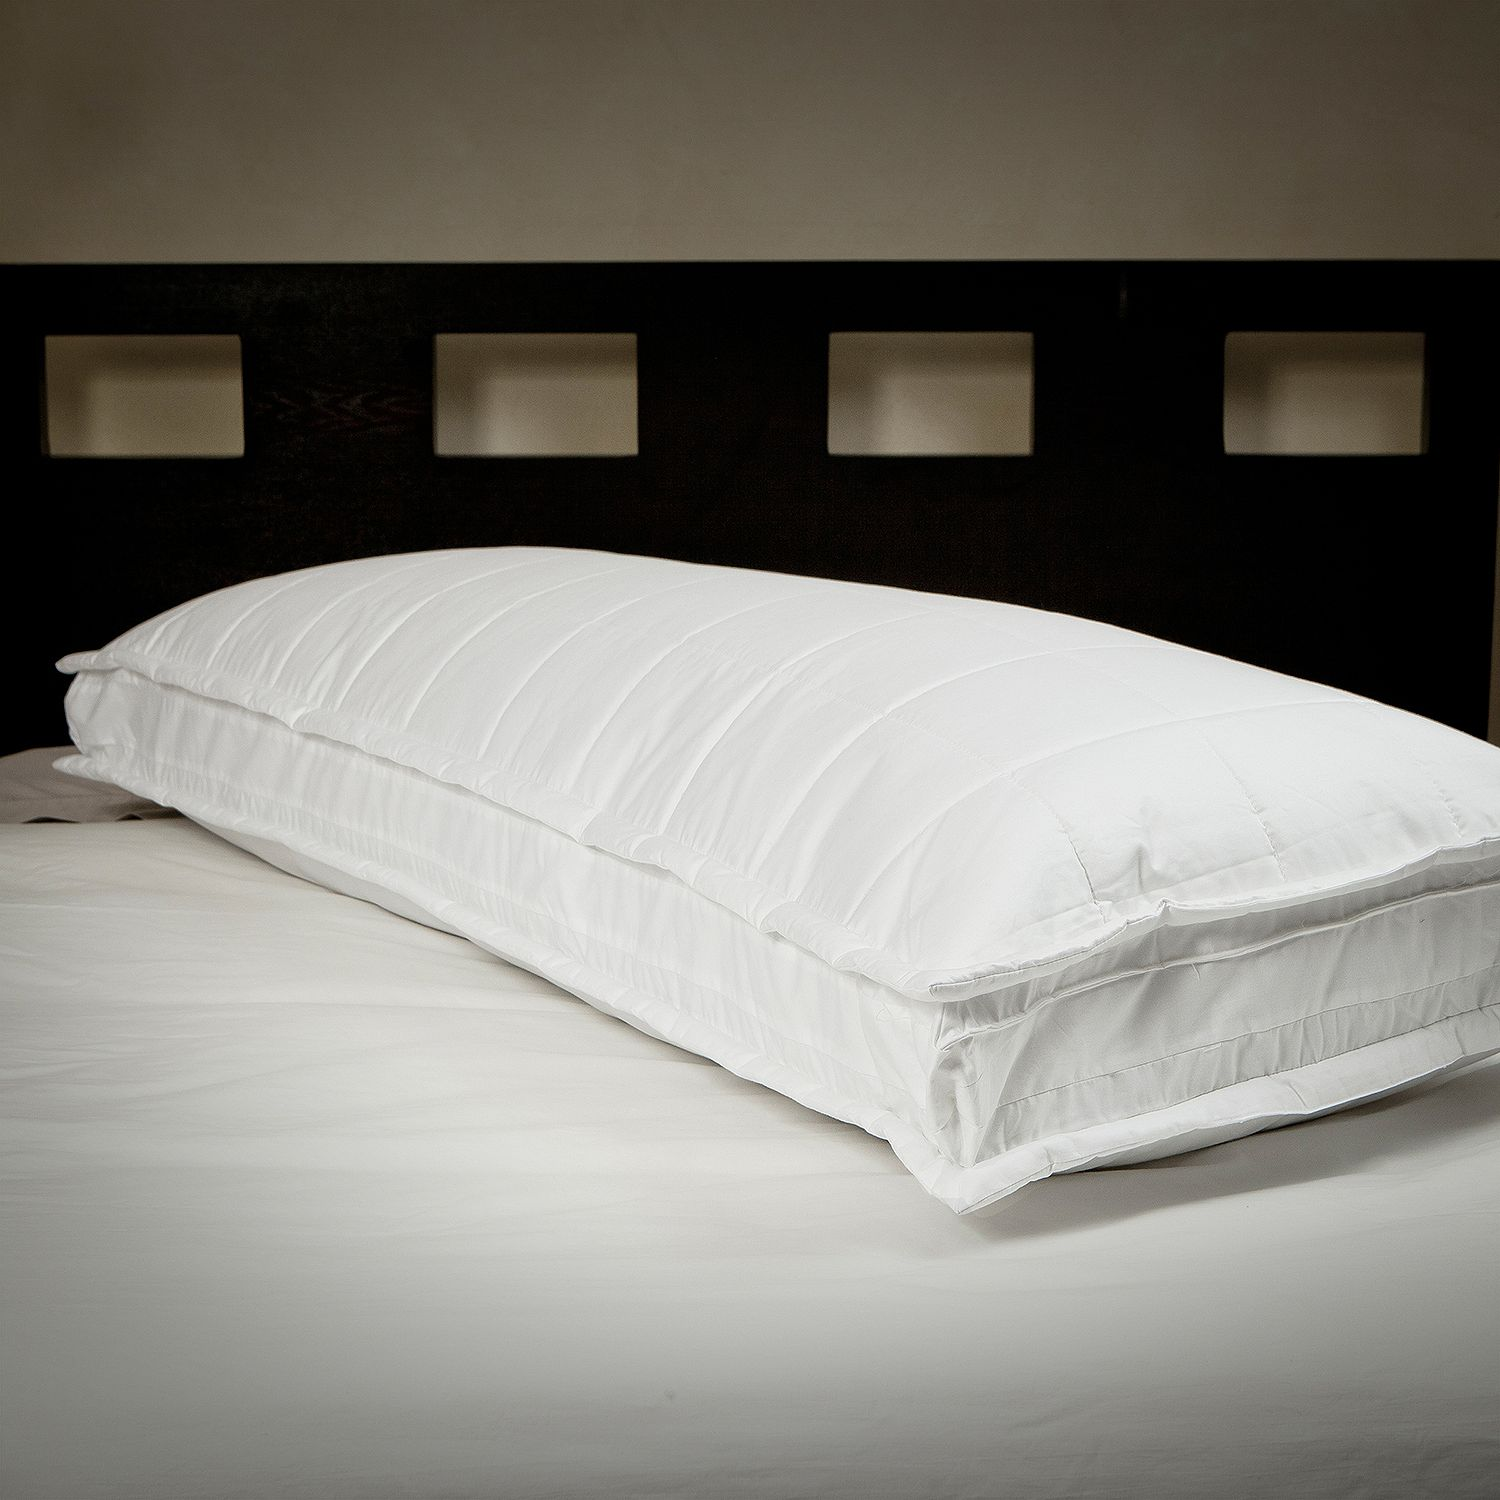 Standard Bed Pillows Product Of Homeluxe 550 Fill Power 40 60 Down Fiber Pillow Standard Bed Pillows Bulk Savings